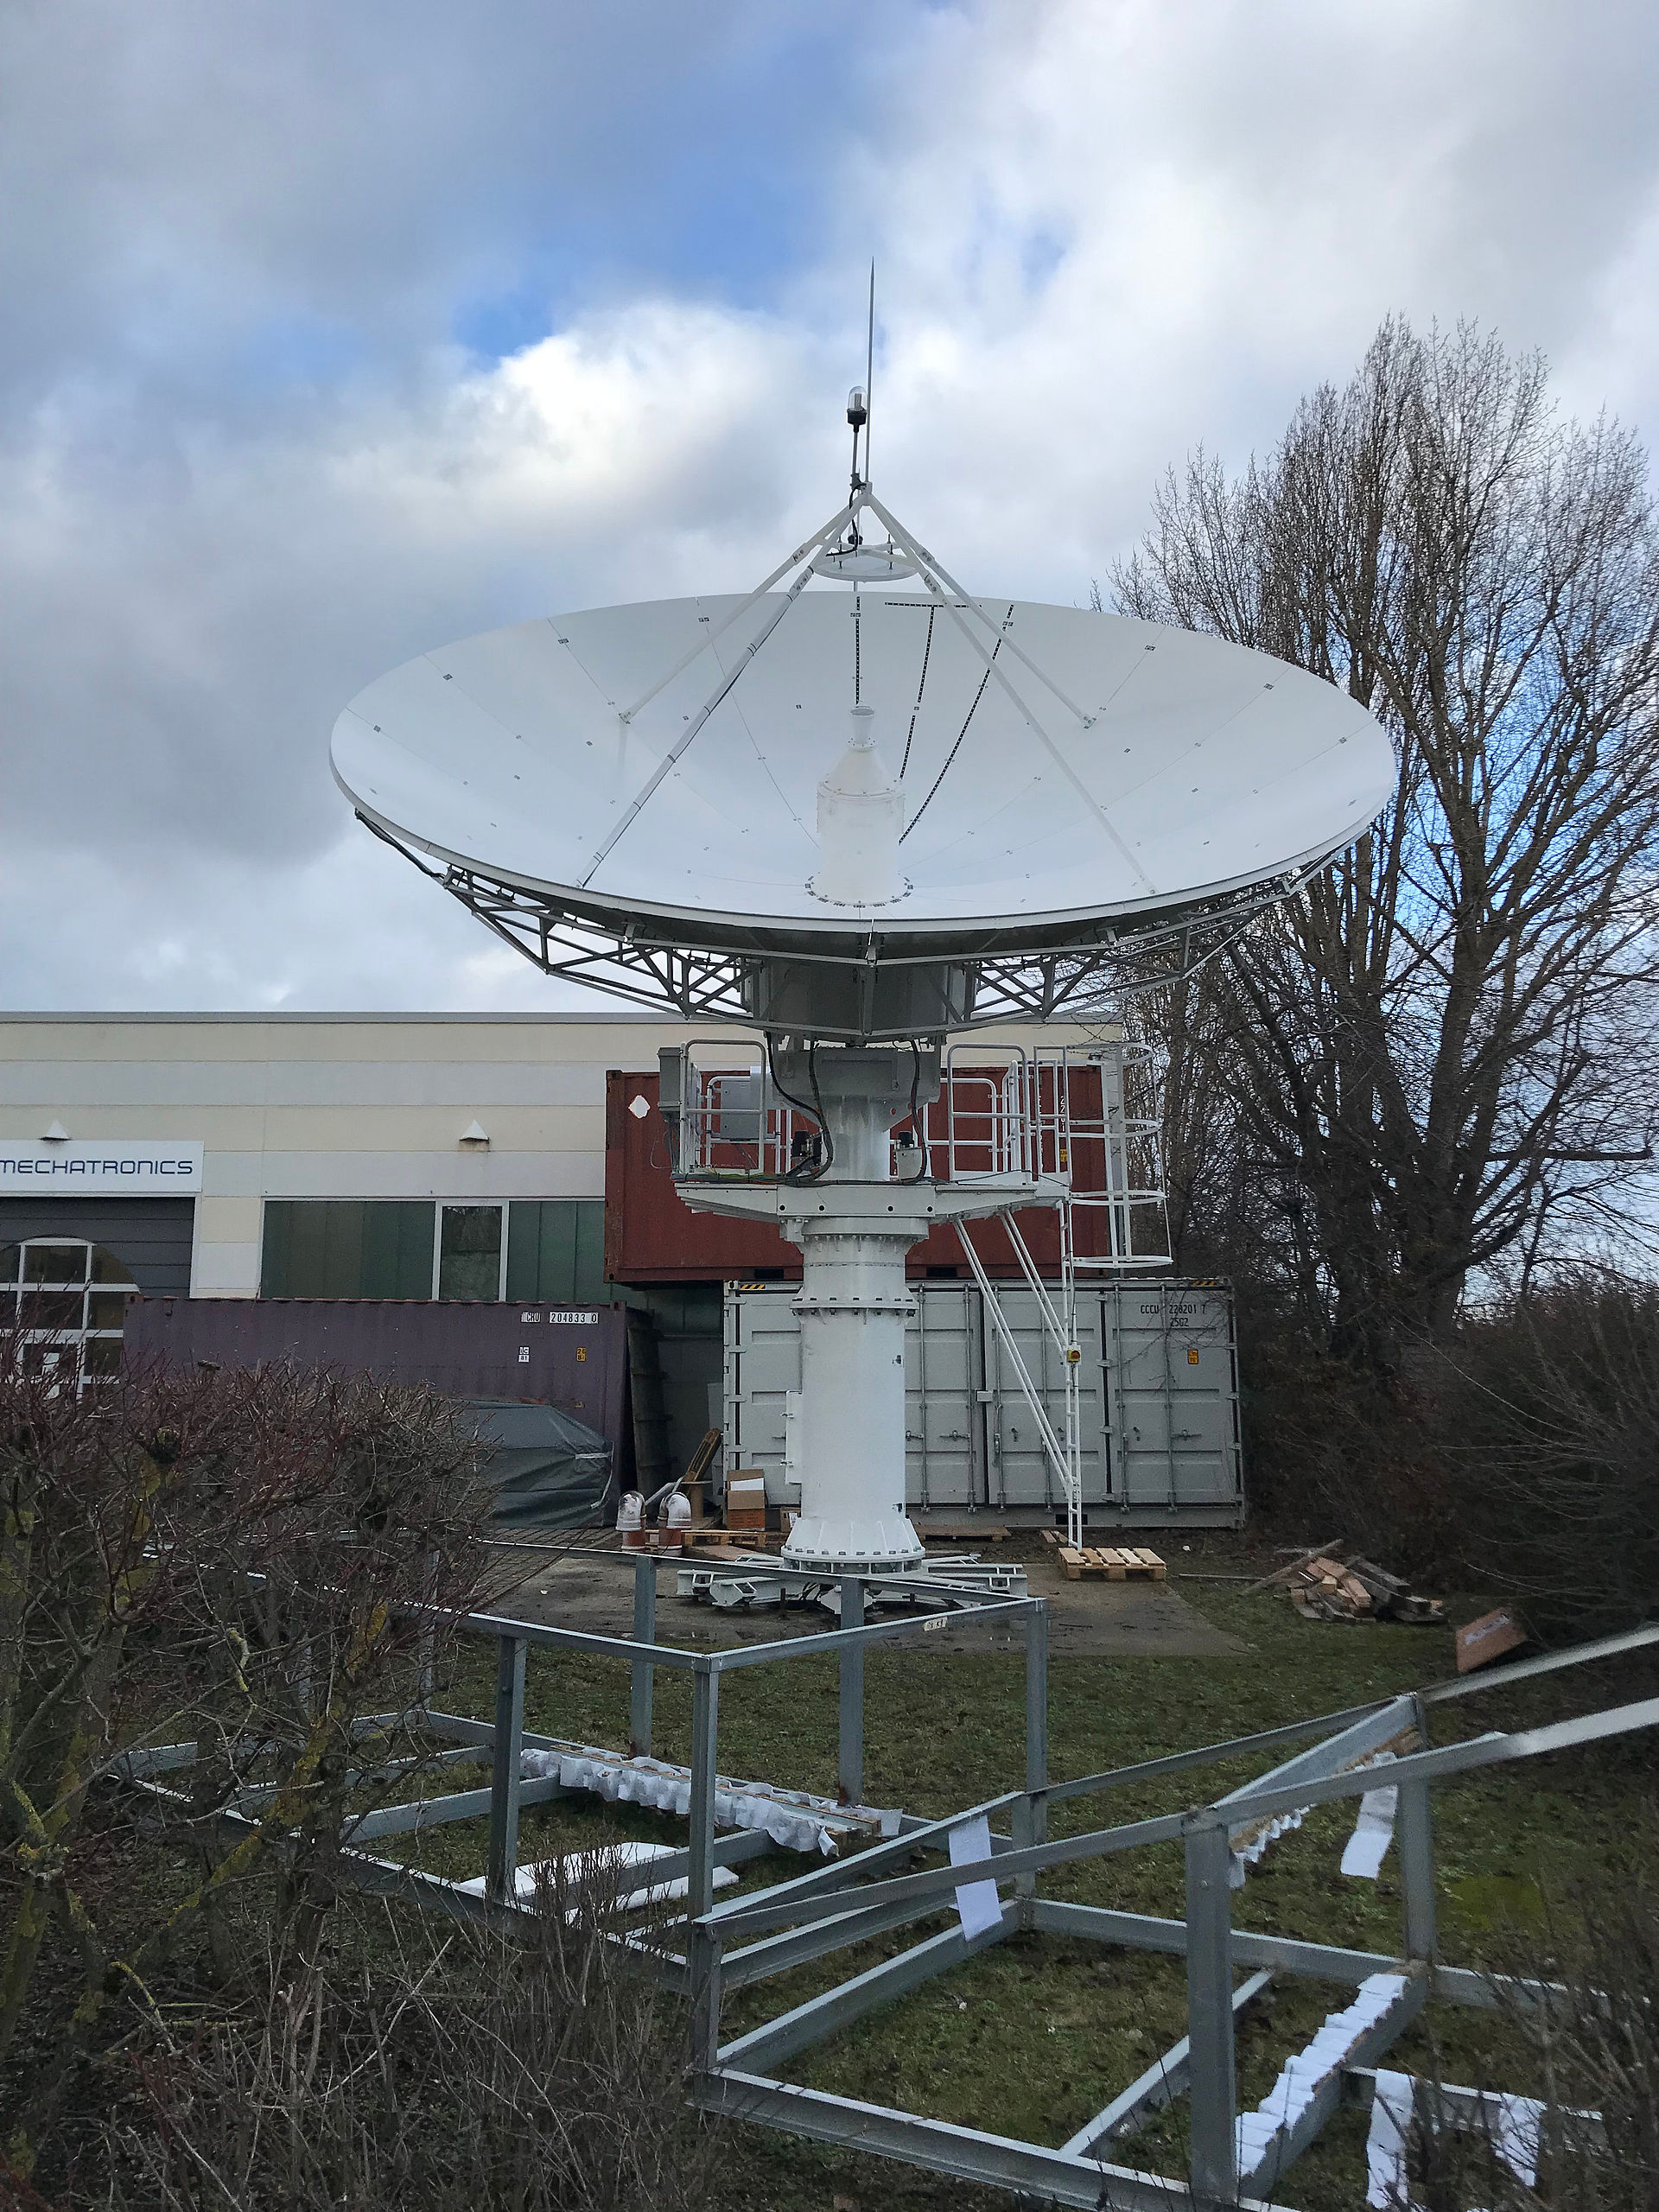 MT Mechatronics building first test antenna for Heinrich Hertz telecommunications satellite mission